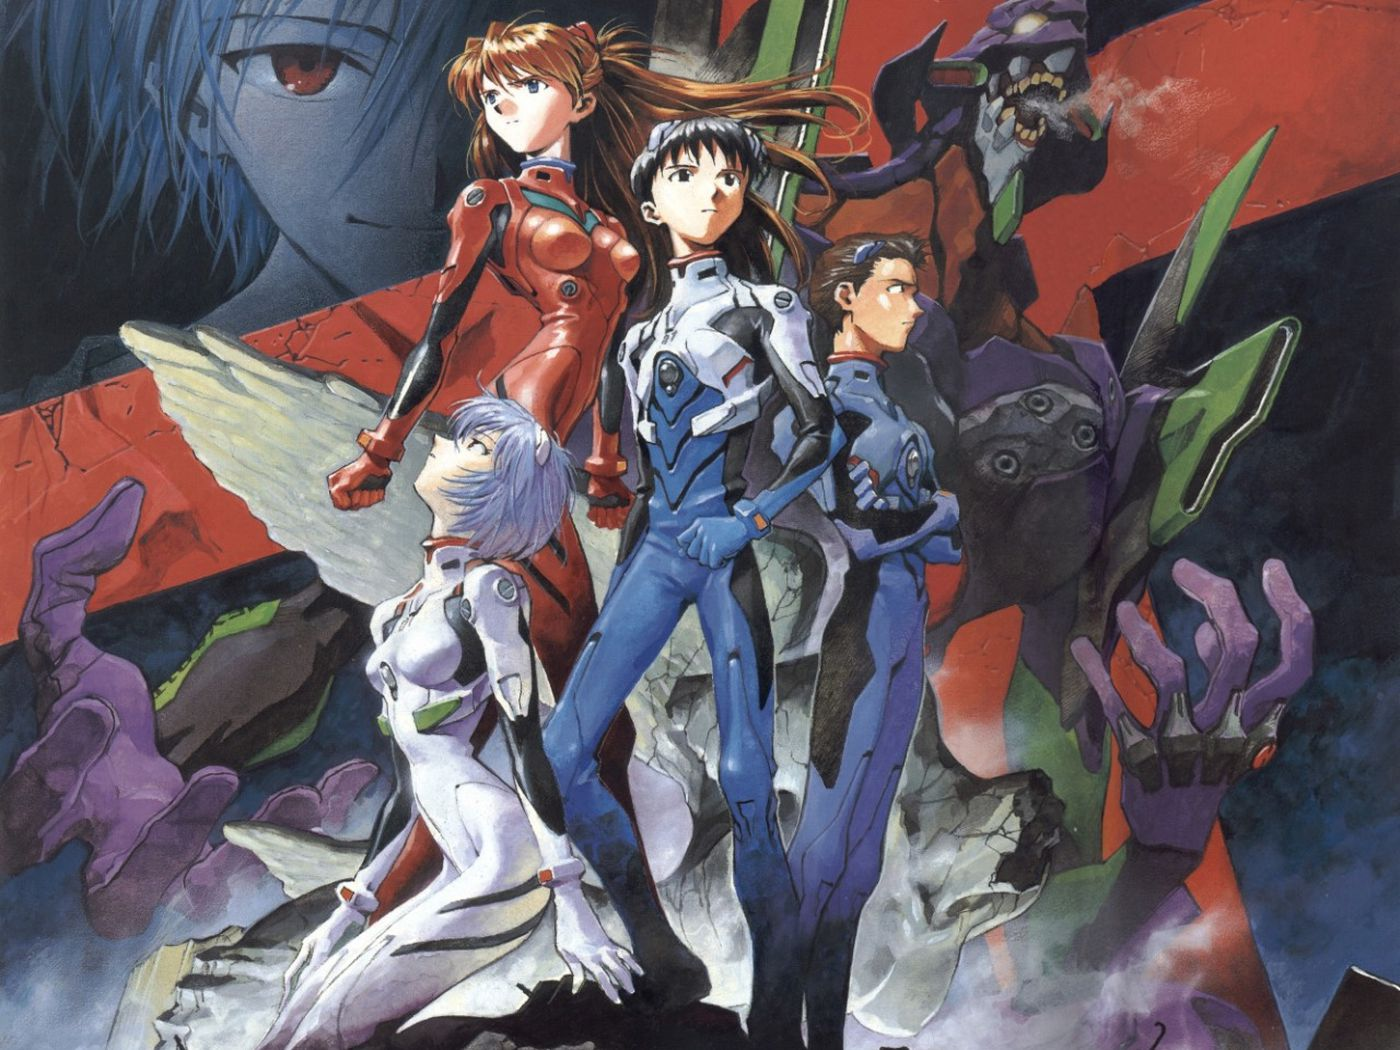 Neon Genesis Evangelion: 8 things to know about the